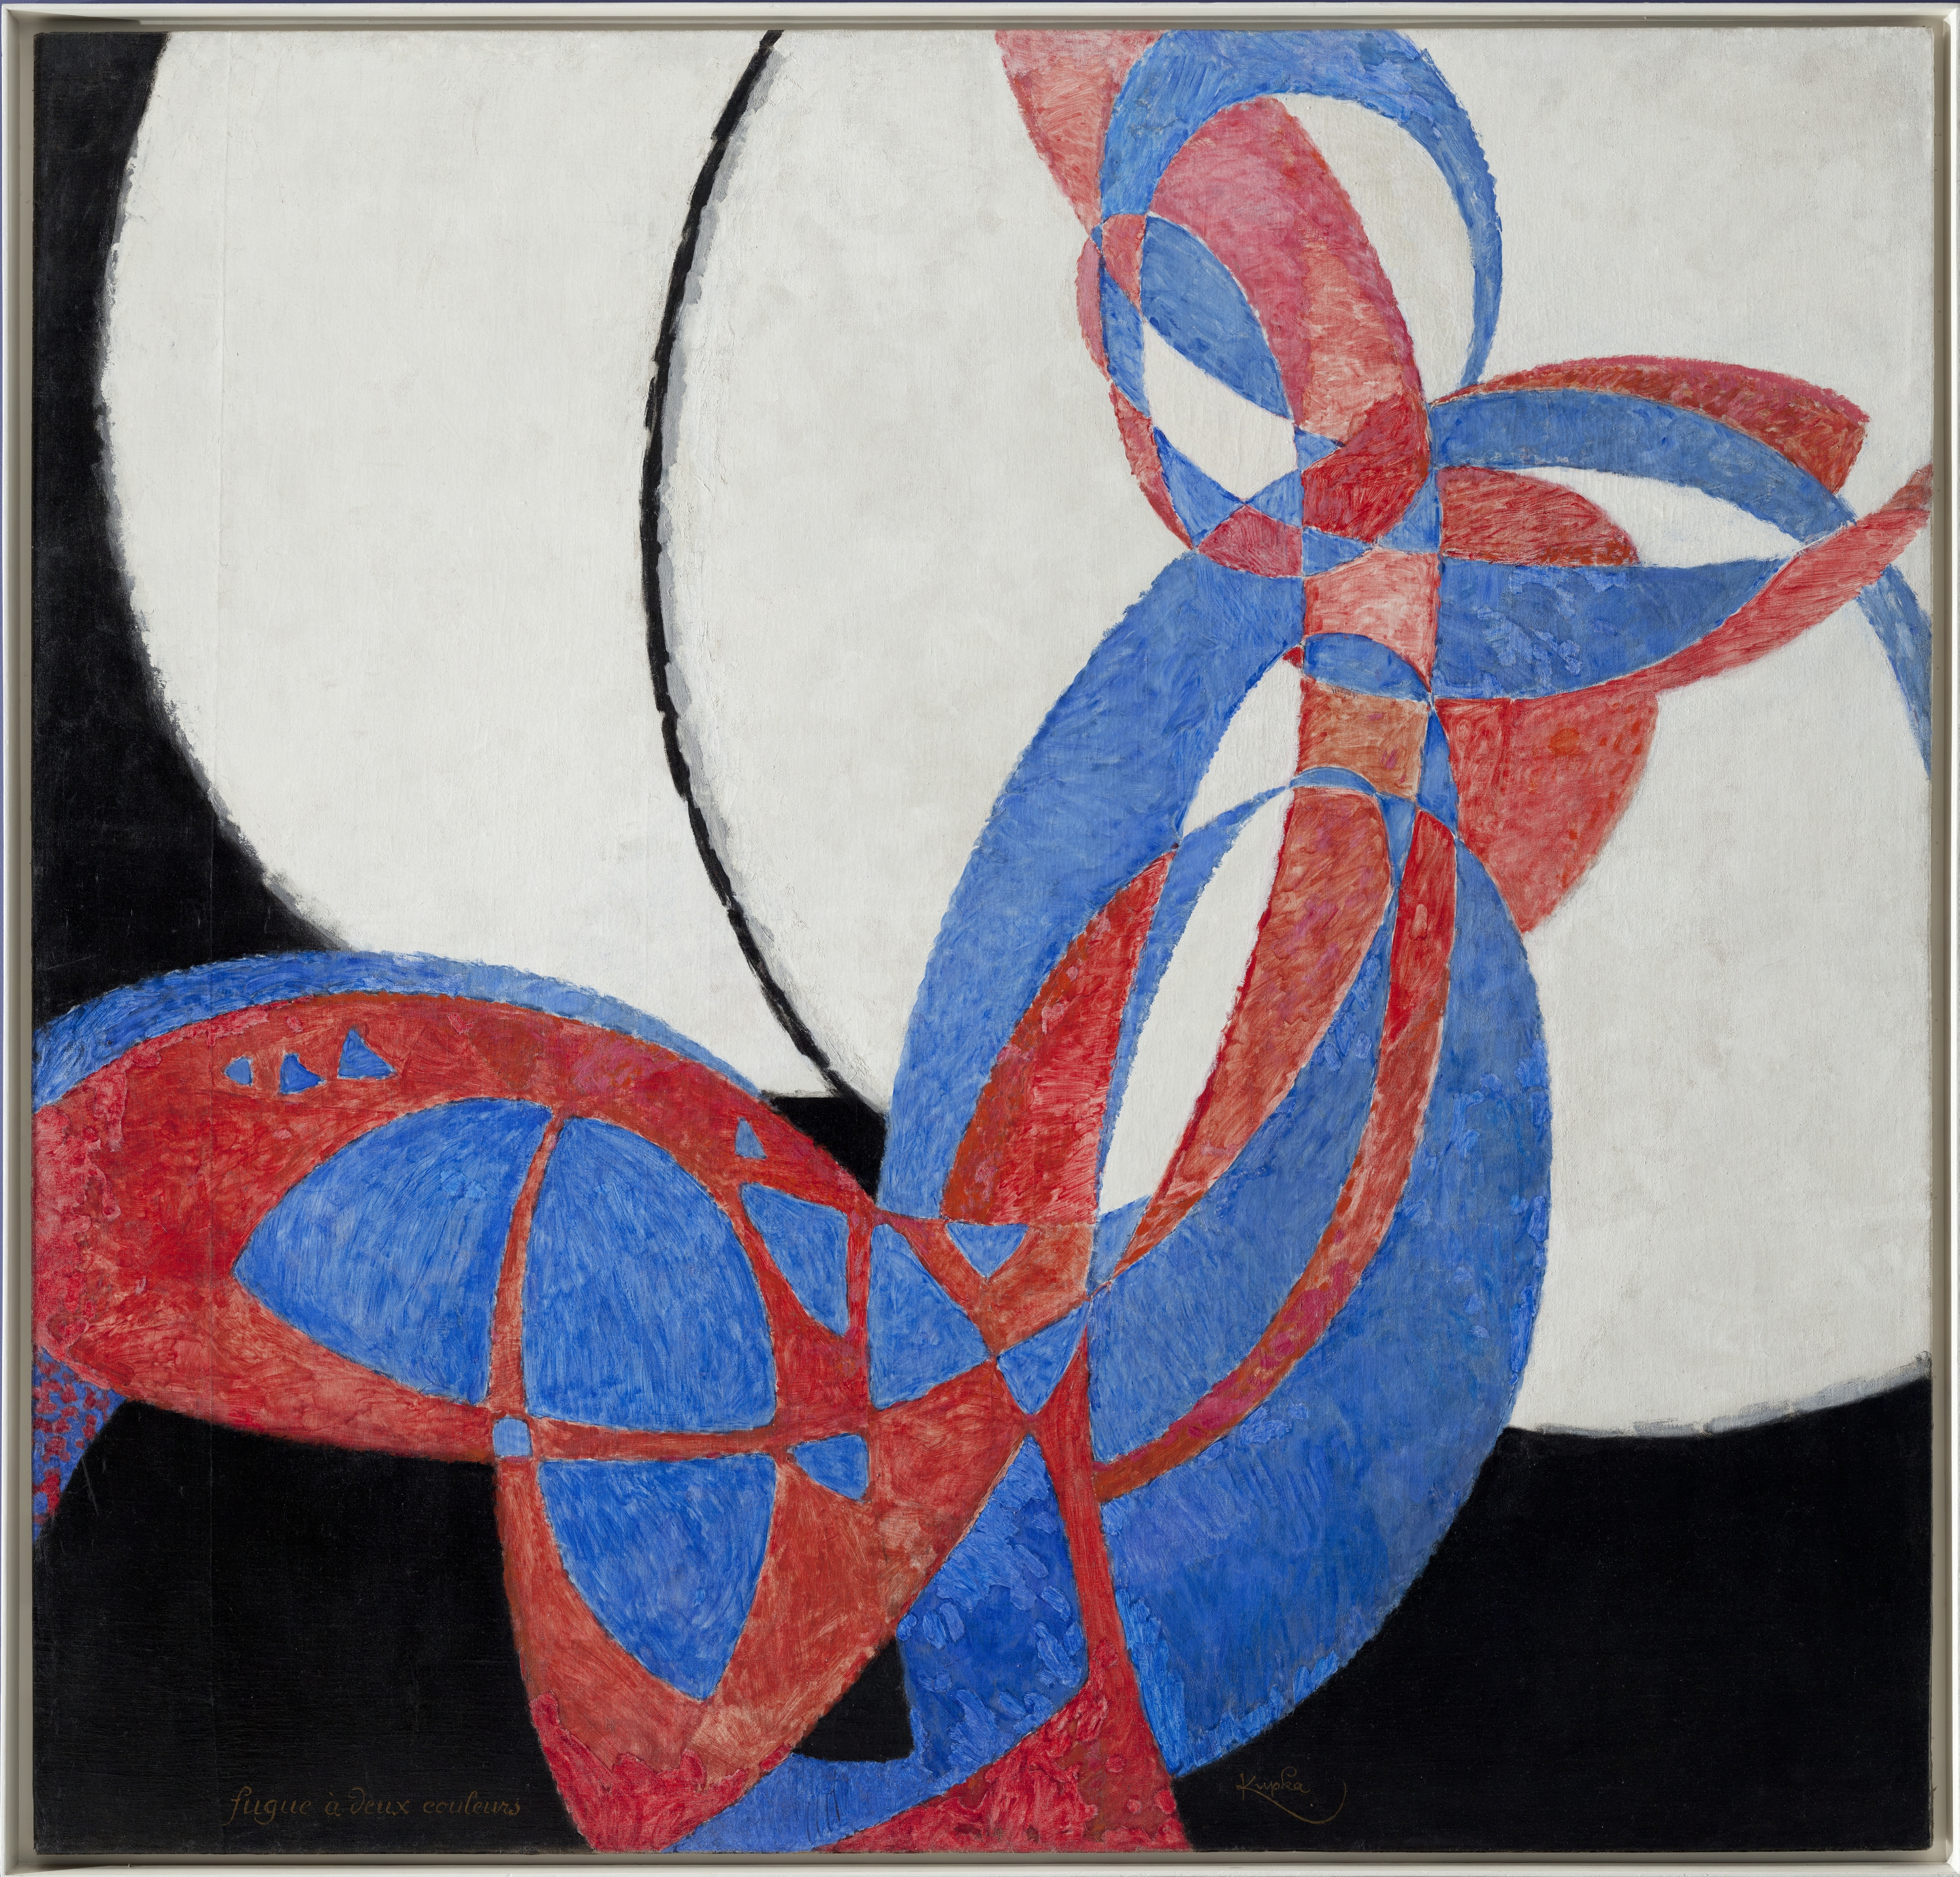 František Kupka, Amorpha. Two Colour Chromantics, 1912